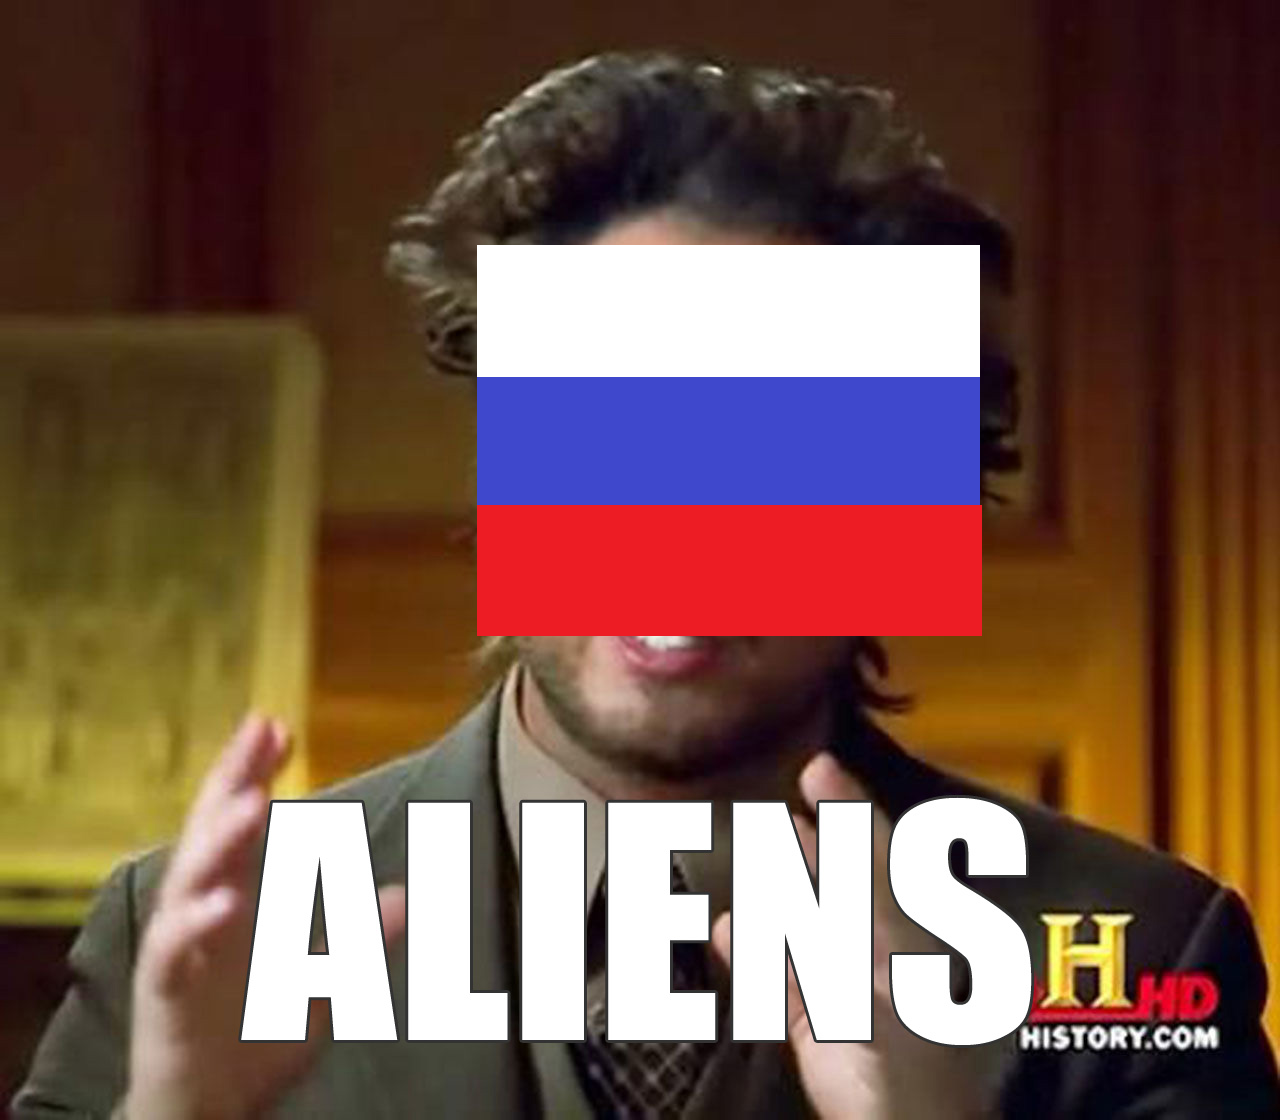 Russia, probably.